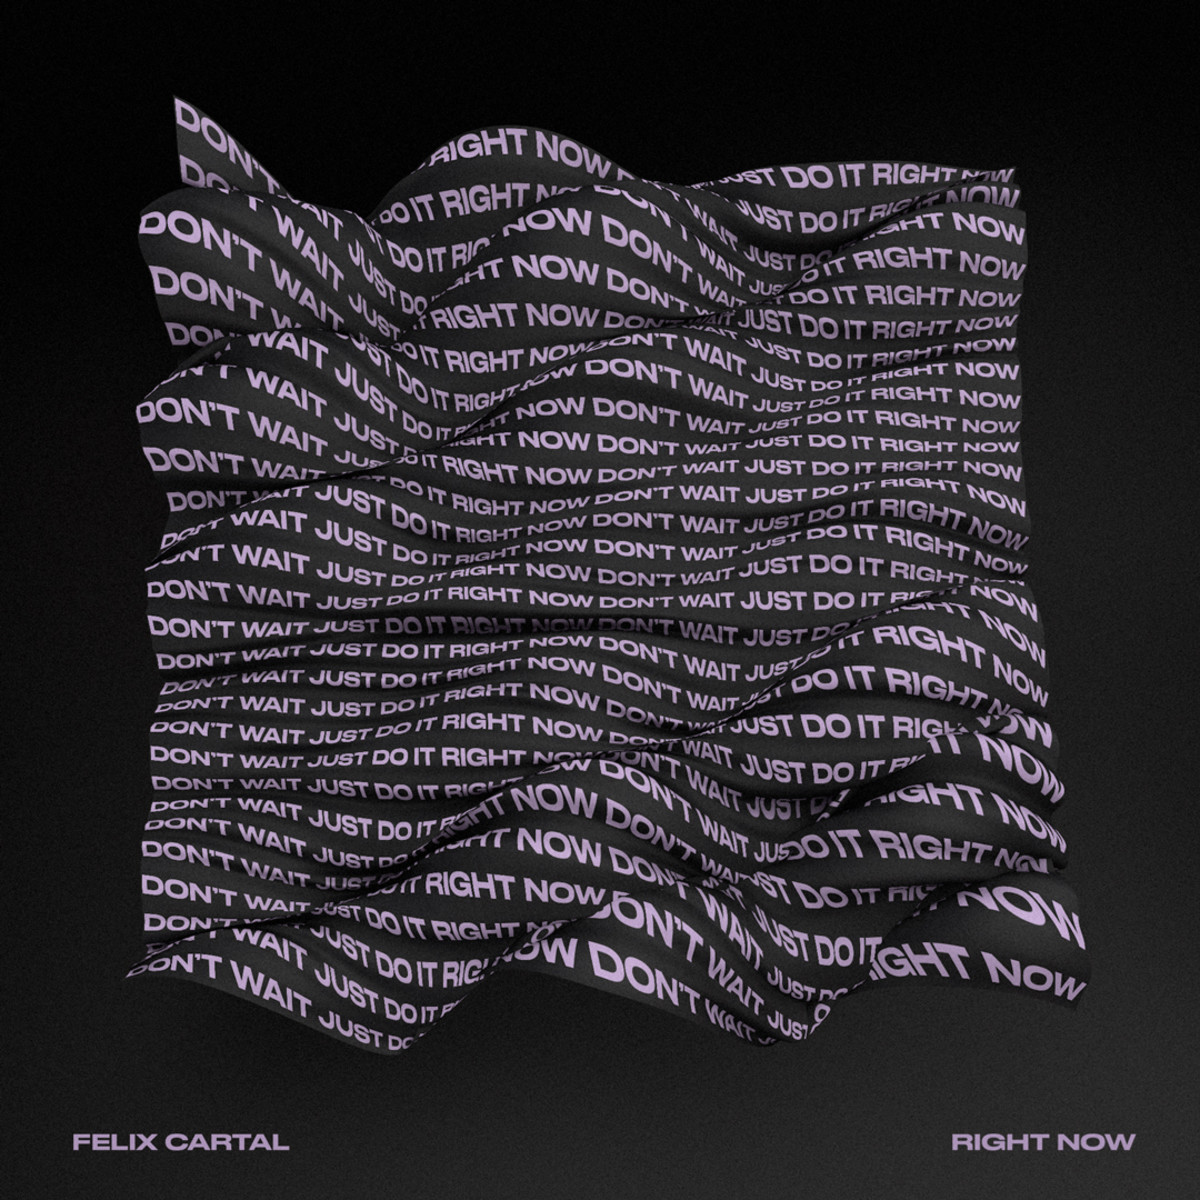 Felix Cartal - Right Now (ALBUM ARTWORK)